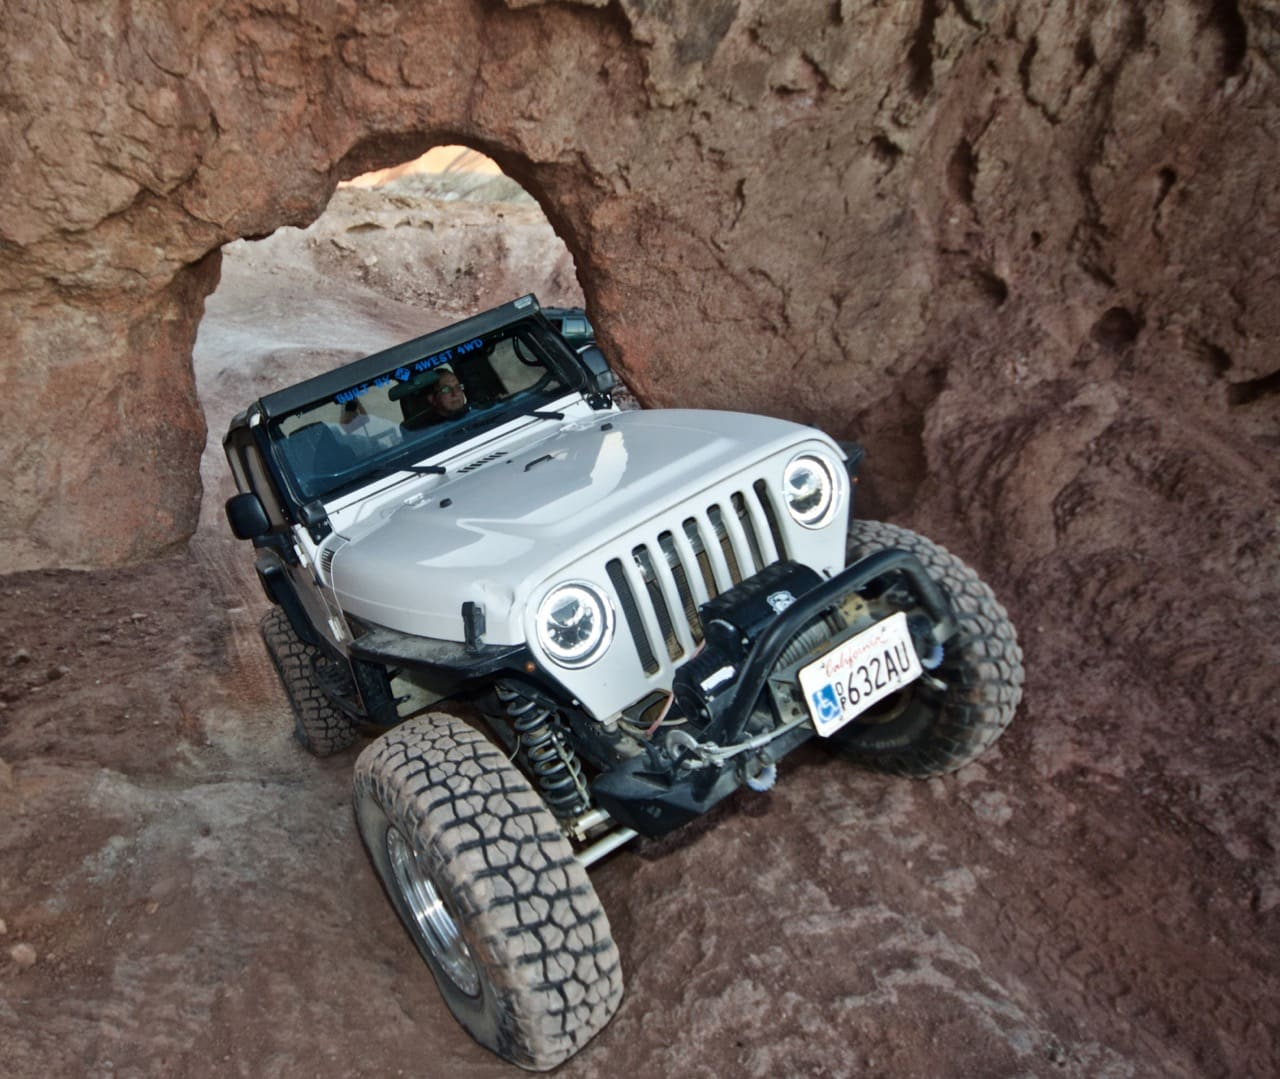 Jeep TJ coming through Kramer's Arch, near Calico Ghost Town